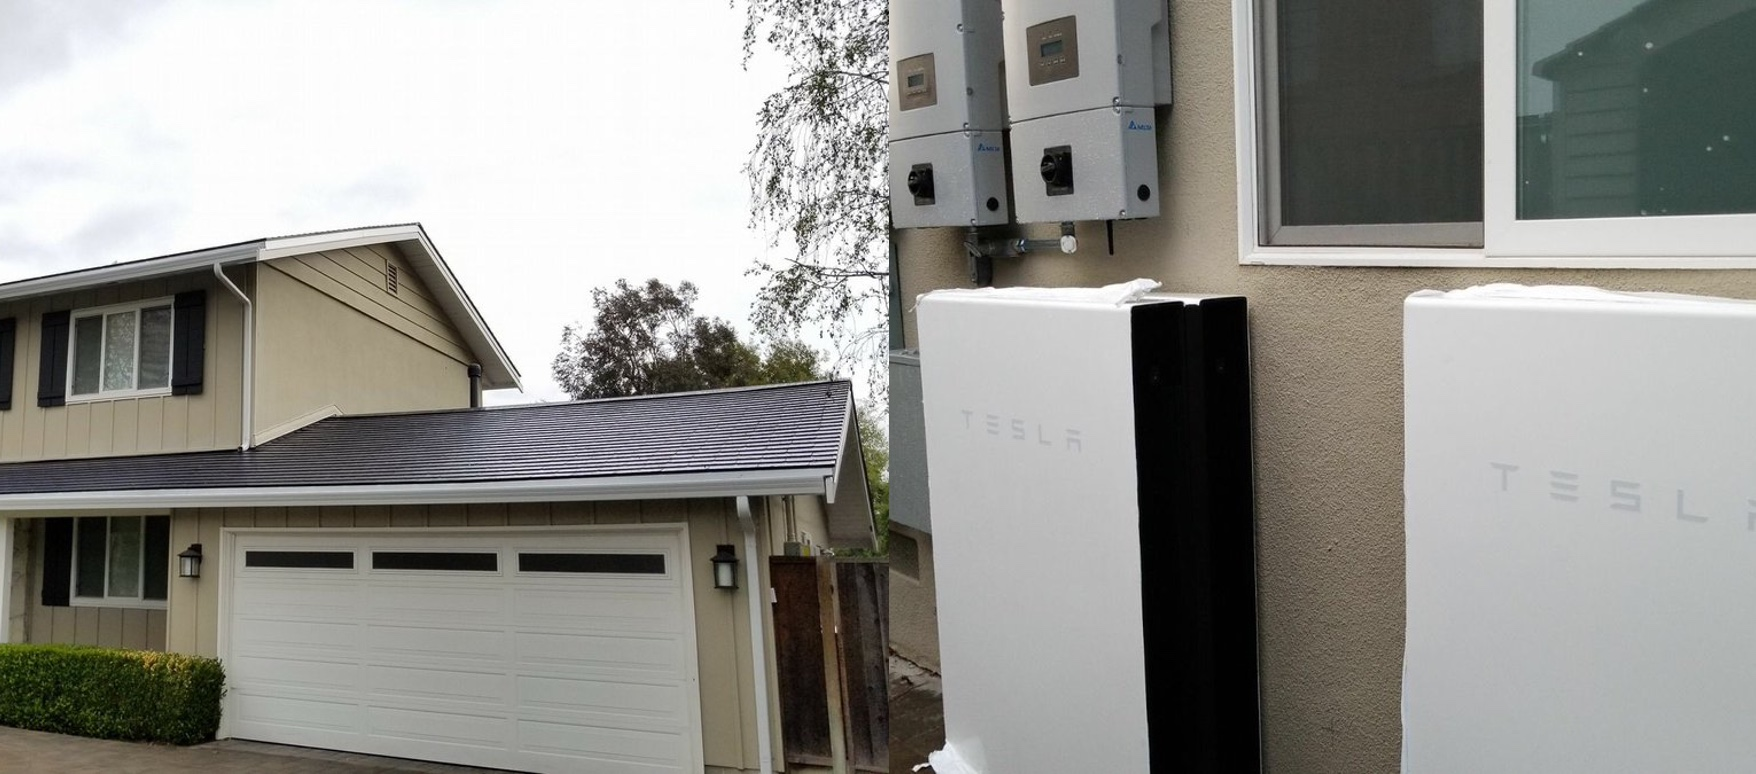 A First Look At The Tesla House Of The Future With Solar